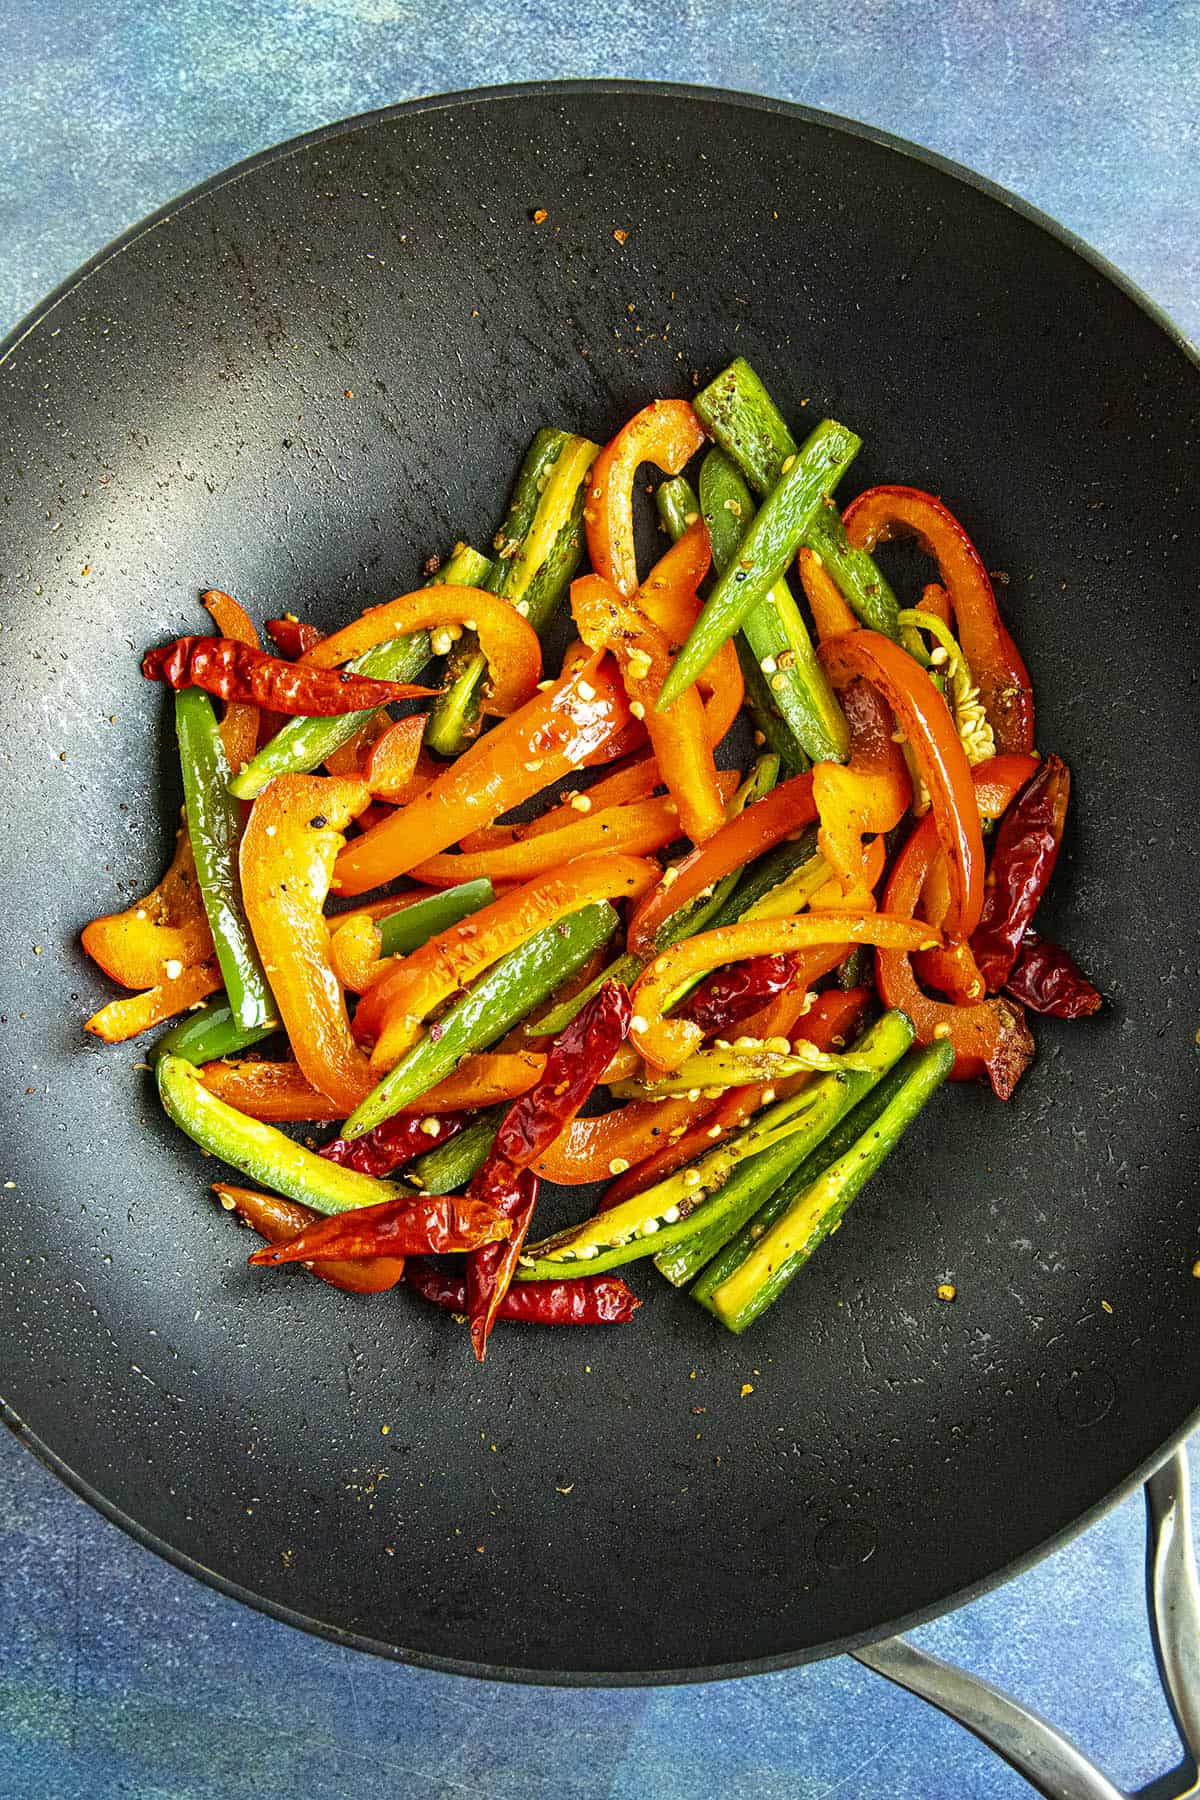 Cooking the peppers in a hot pan